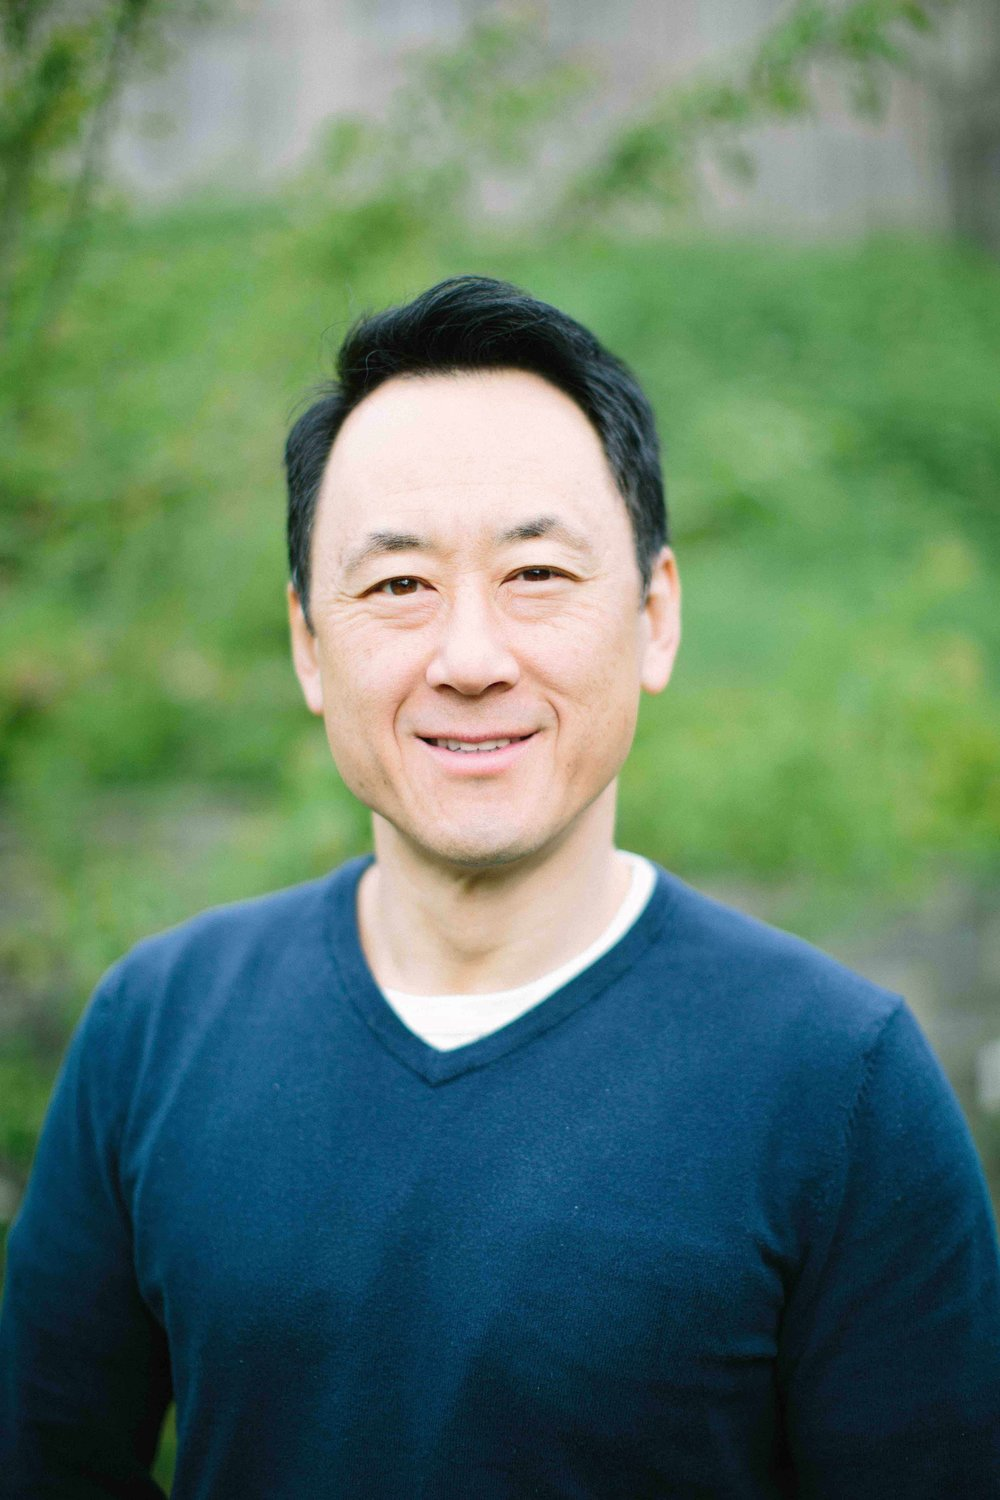 Jimmy Yi - Associate Pastor   Jimmy is our part-time pastor that oversees men's ministry and helps shepherd our community. He focuses on pastoral visitations, leads worship on occasion, and supports us in all things creative.